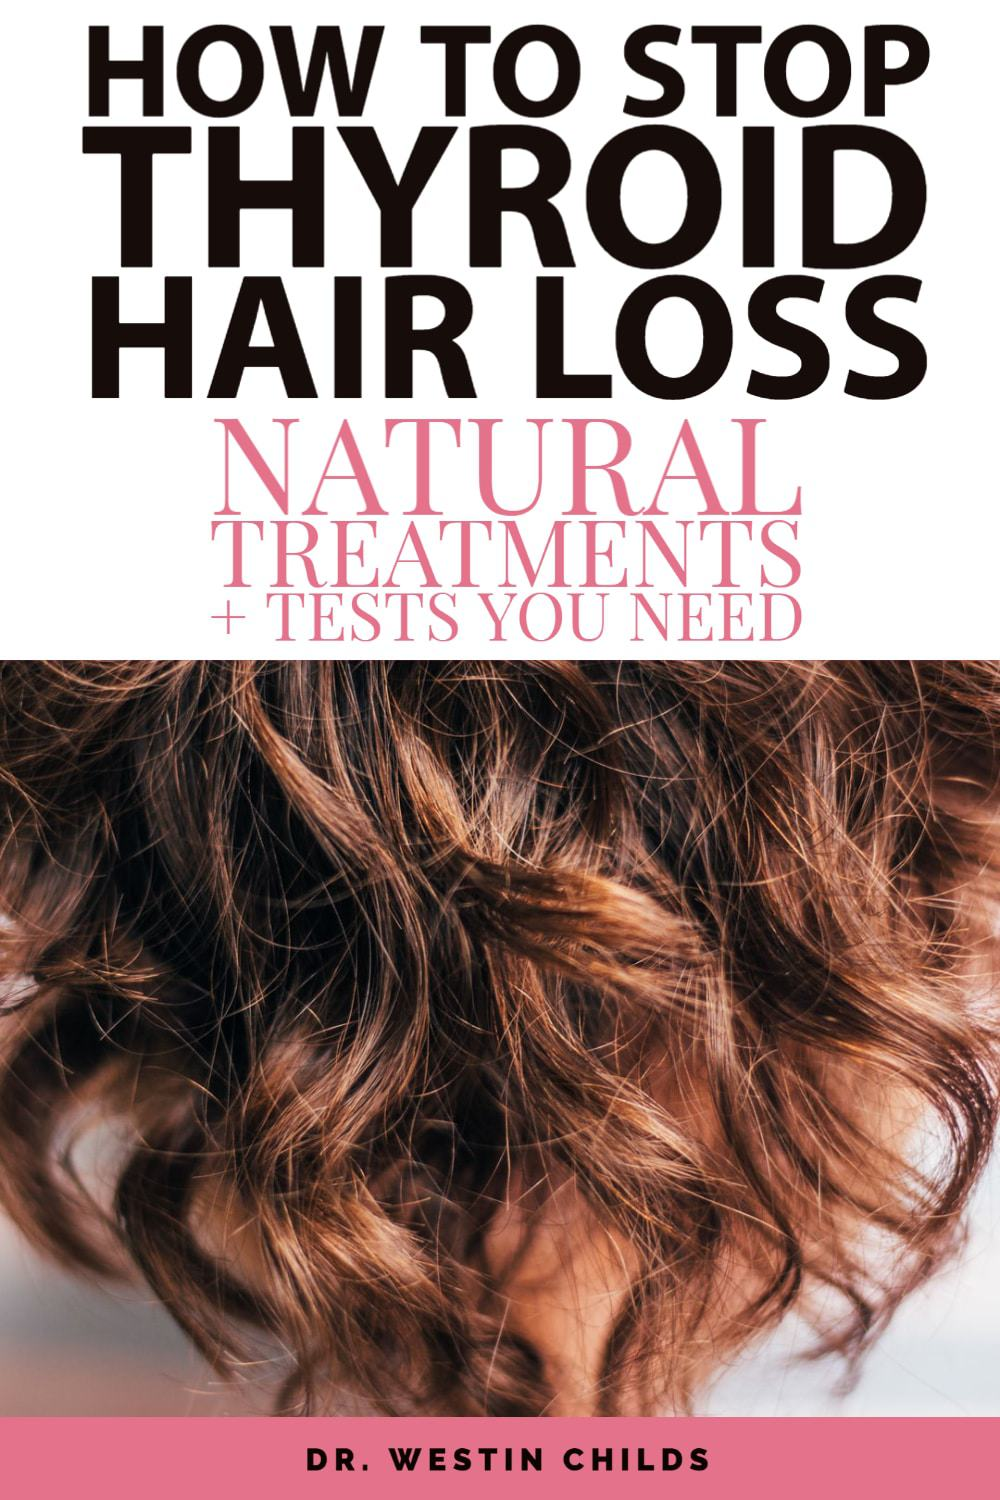 how to stop thyroid hair loss for good